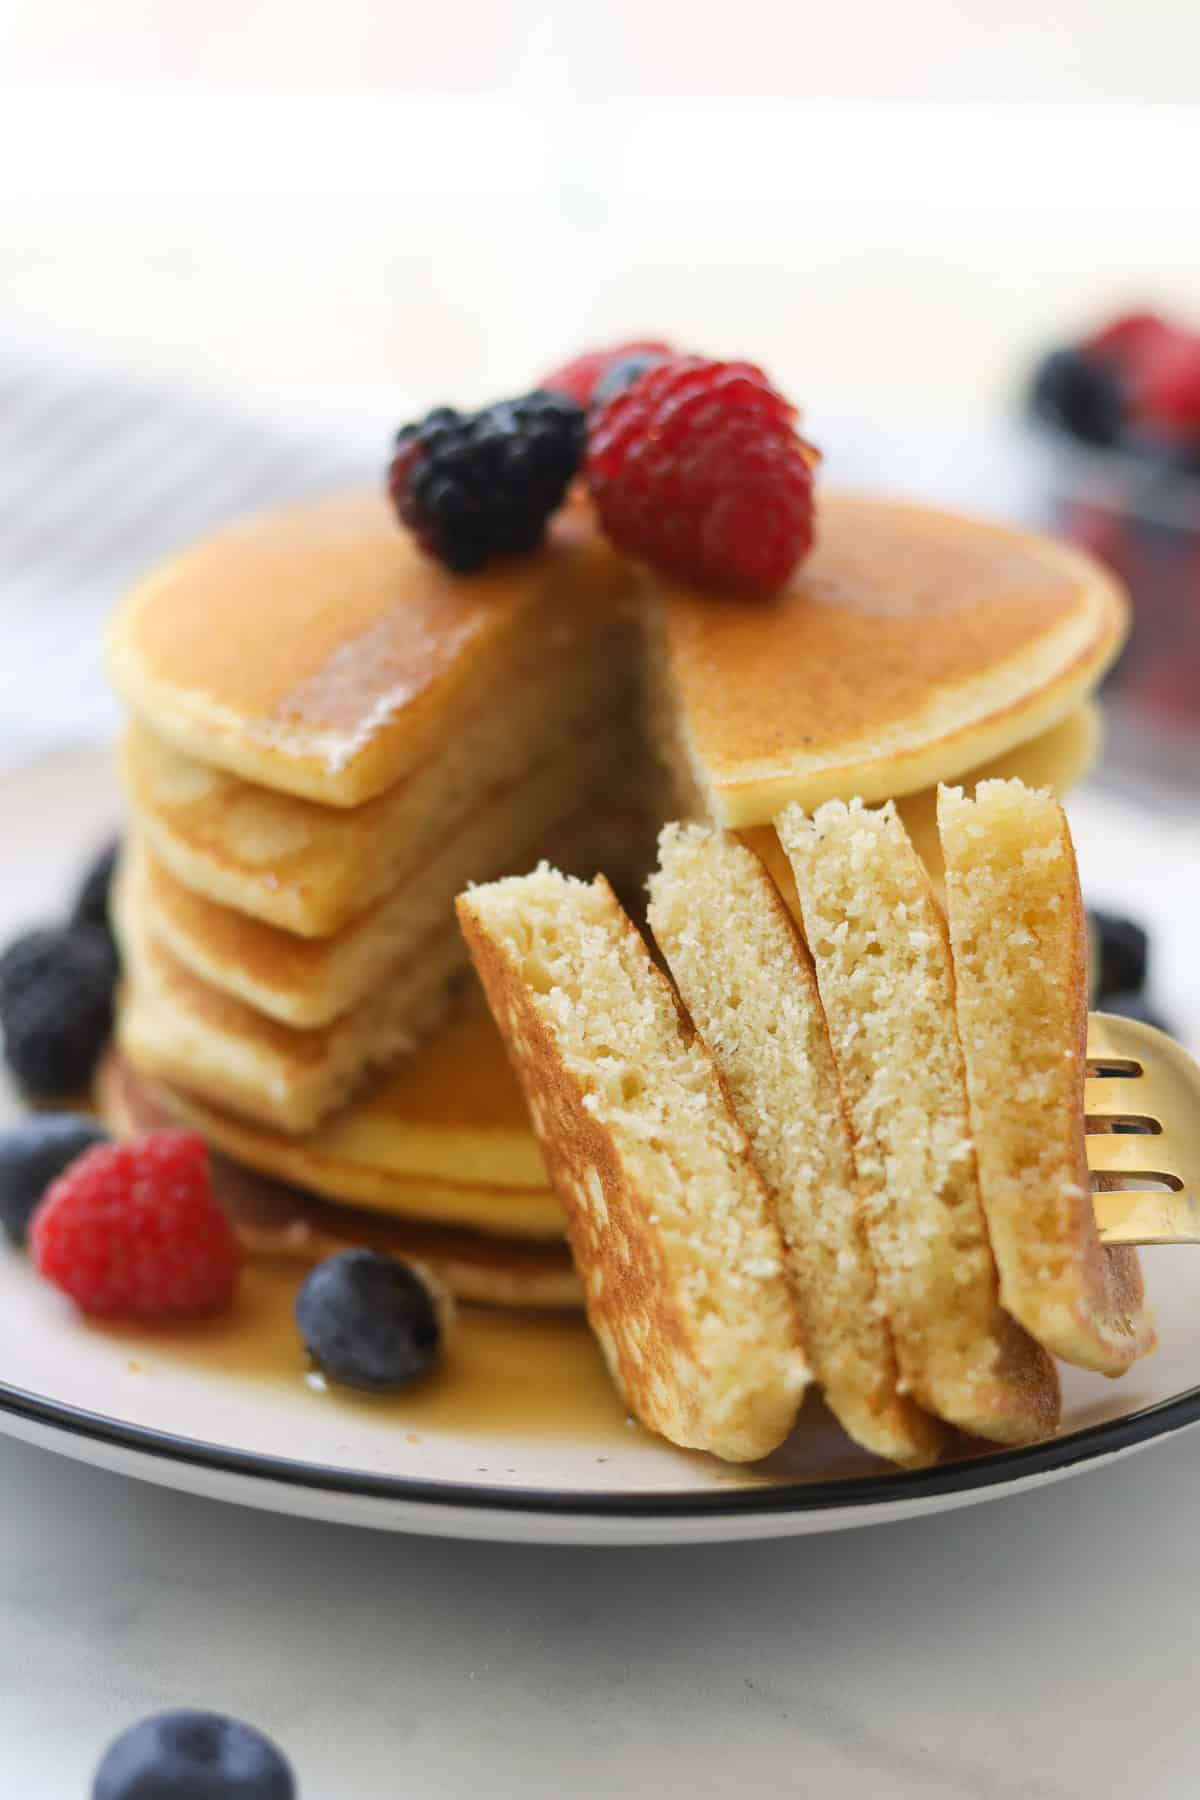 Closeup image of cut pancakes on a fork.